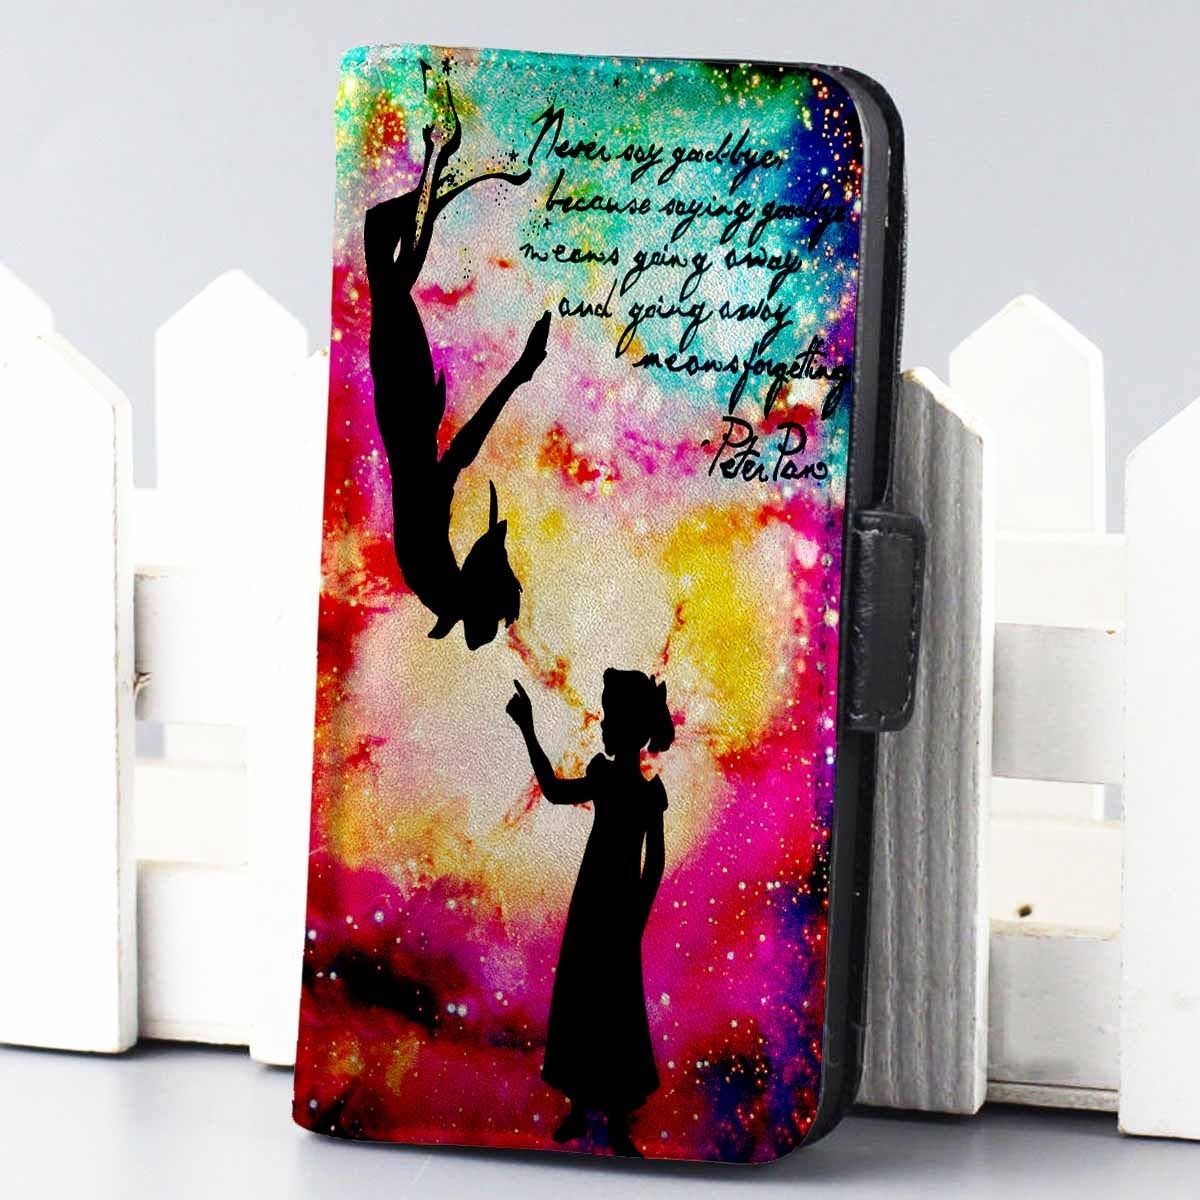 low priced 3518c b04ad Peter Pan and Wendy Galaxy Nebula Disney wallet case for iphone 4,4s ...